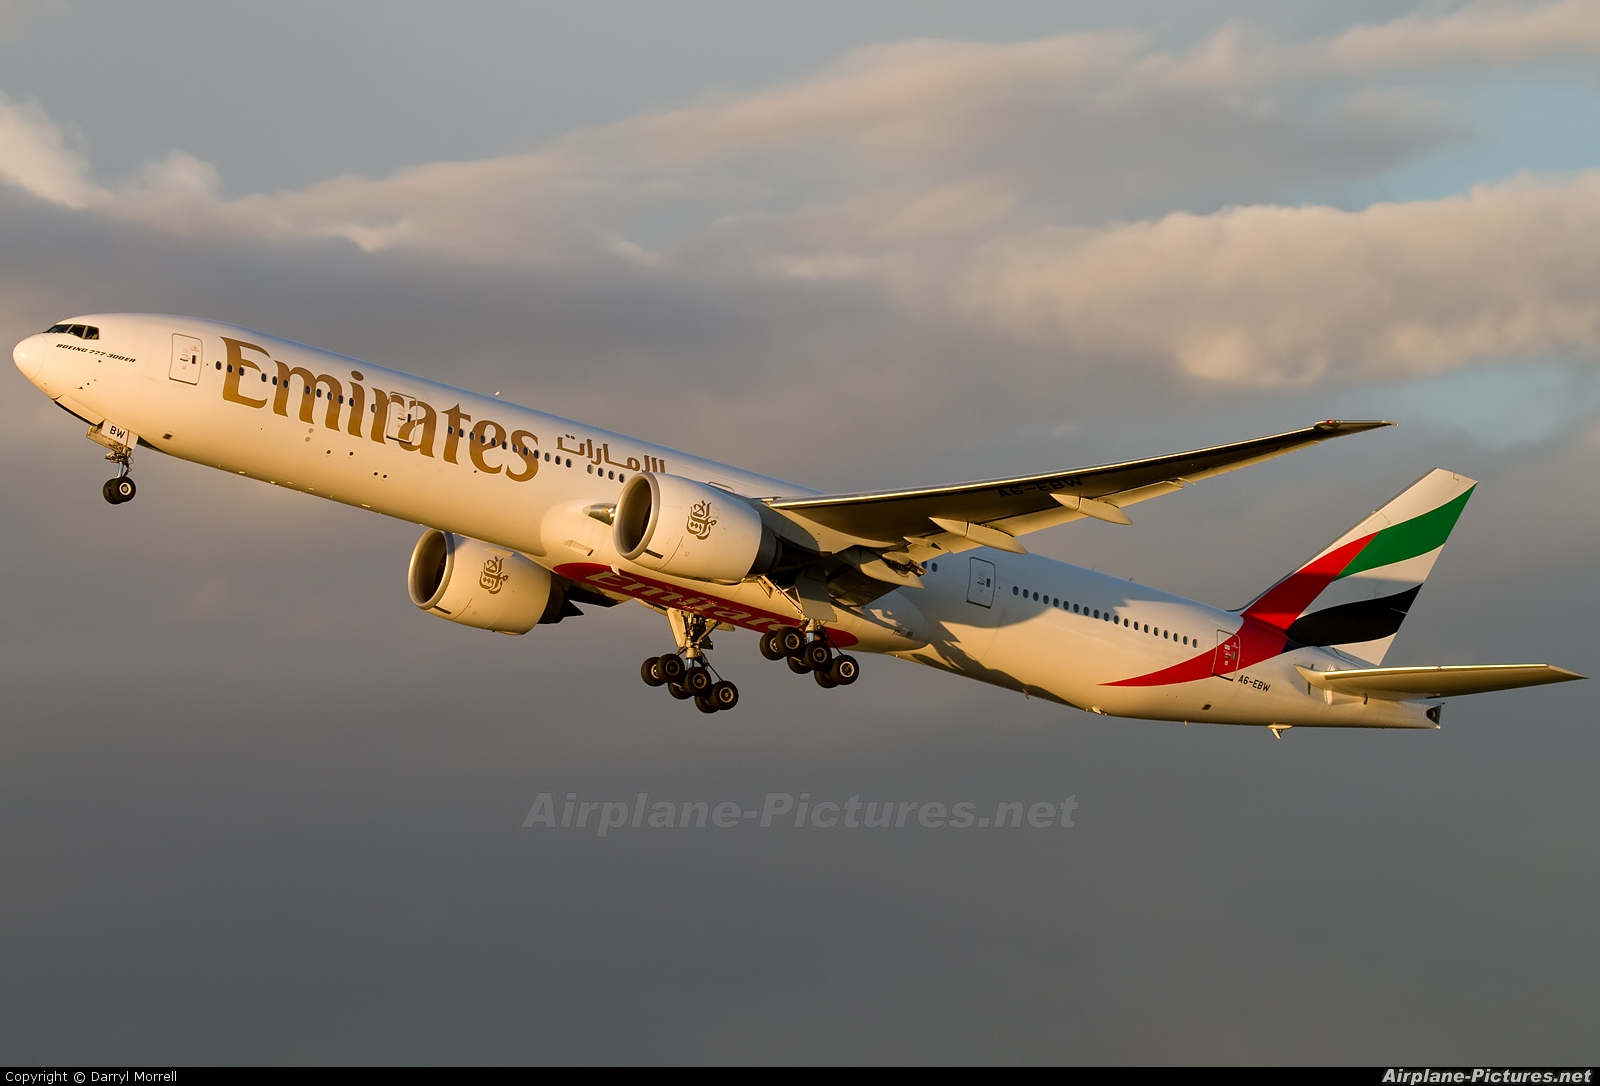 Emirates Airlines A6-EBW aircraft at London - Heathrow